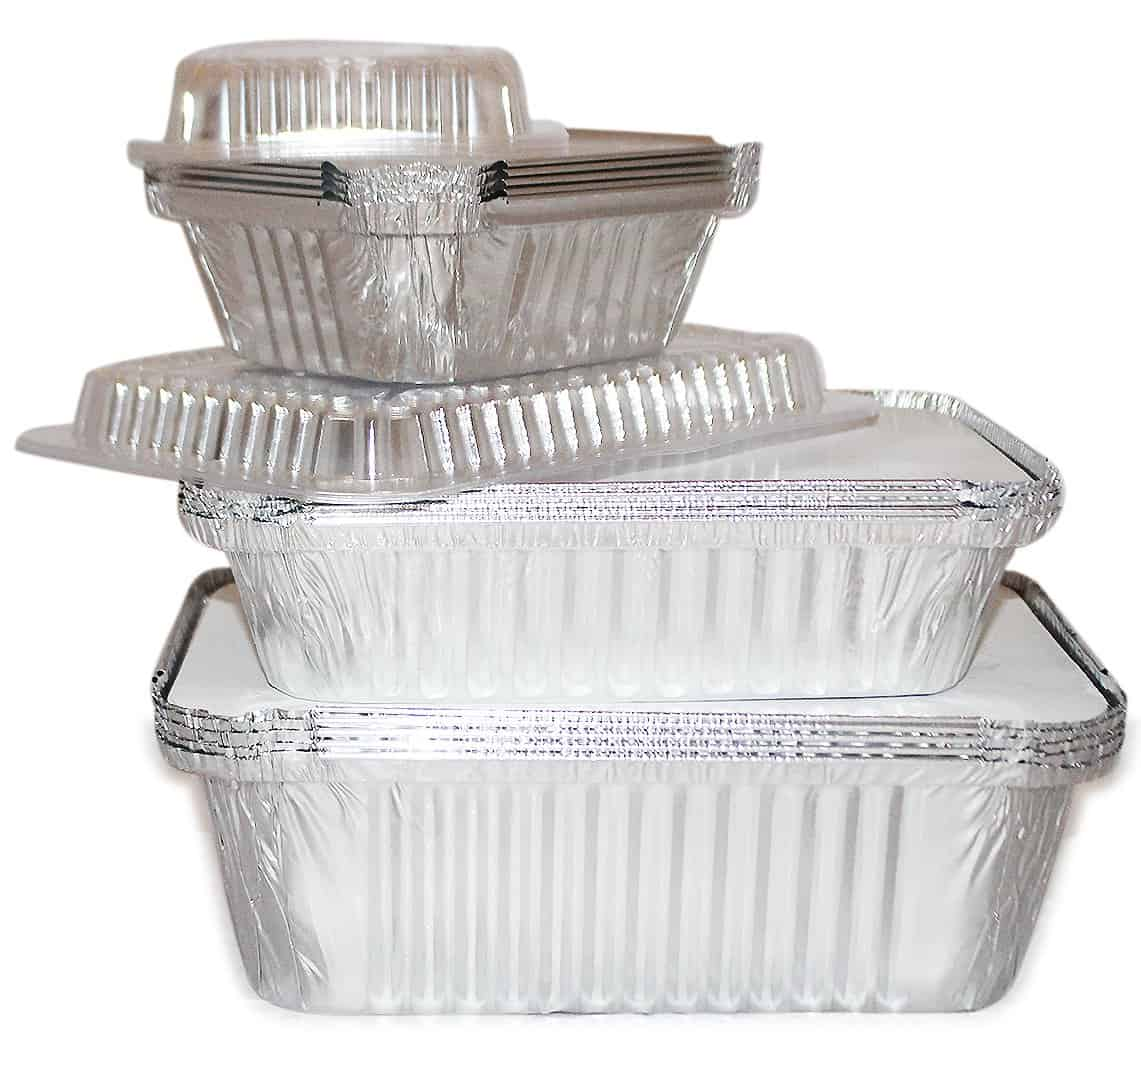 Aluminum Foil Pan Containers Variety Pack